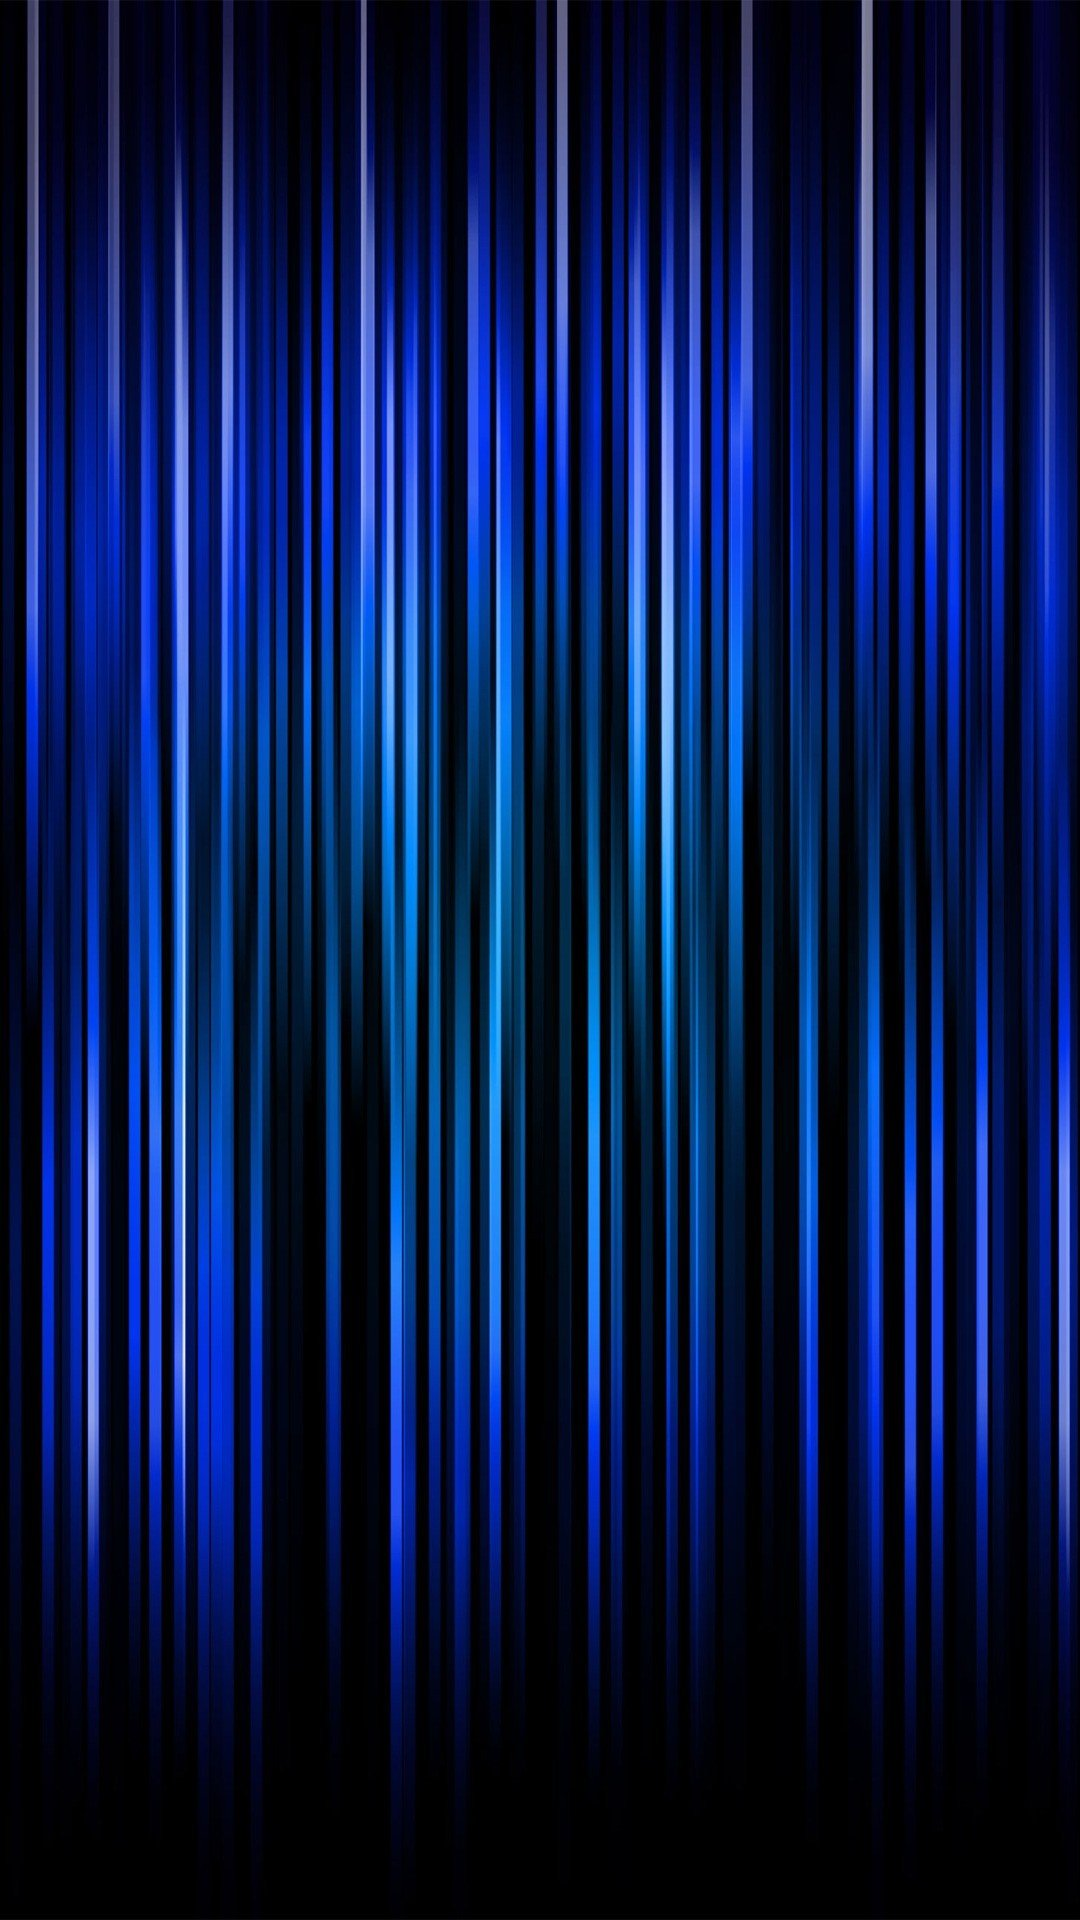 awesome vertical lines wallpaper - photo #37